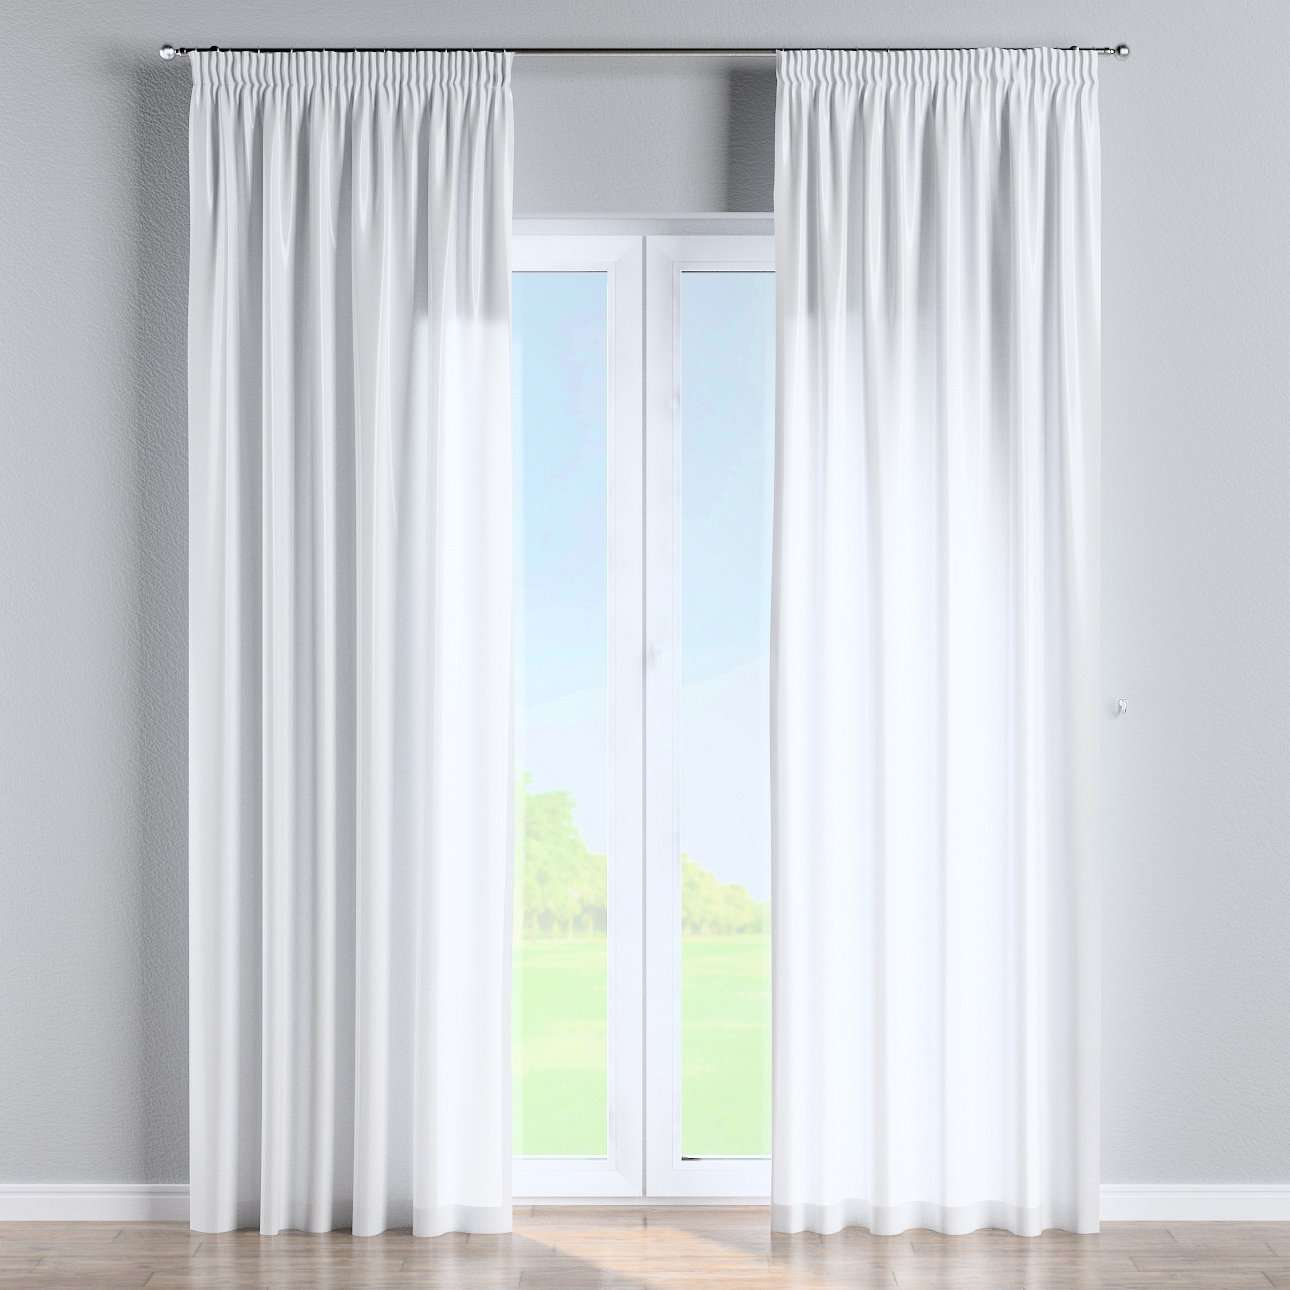 Pencil pleat curtains in collection Christmas, fabric: 141-78